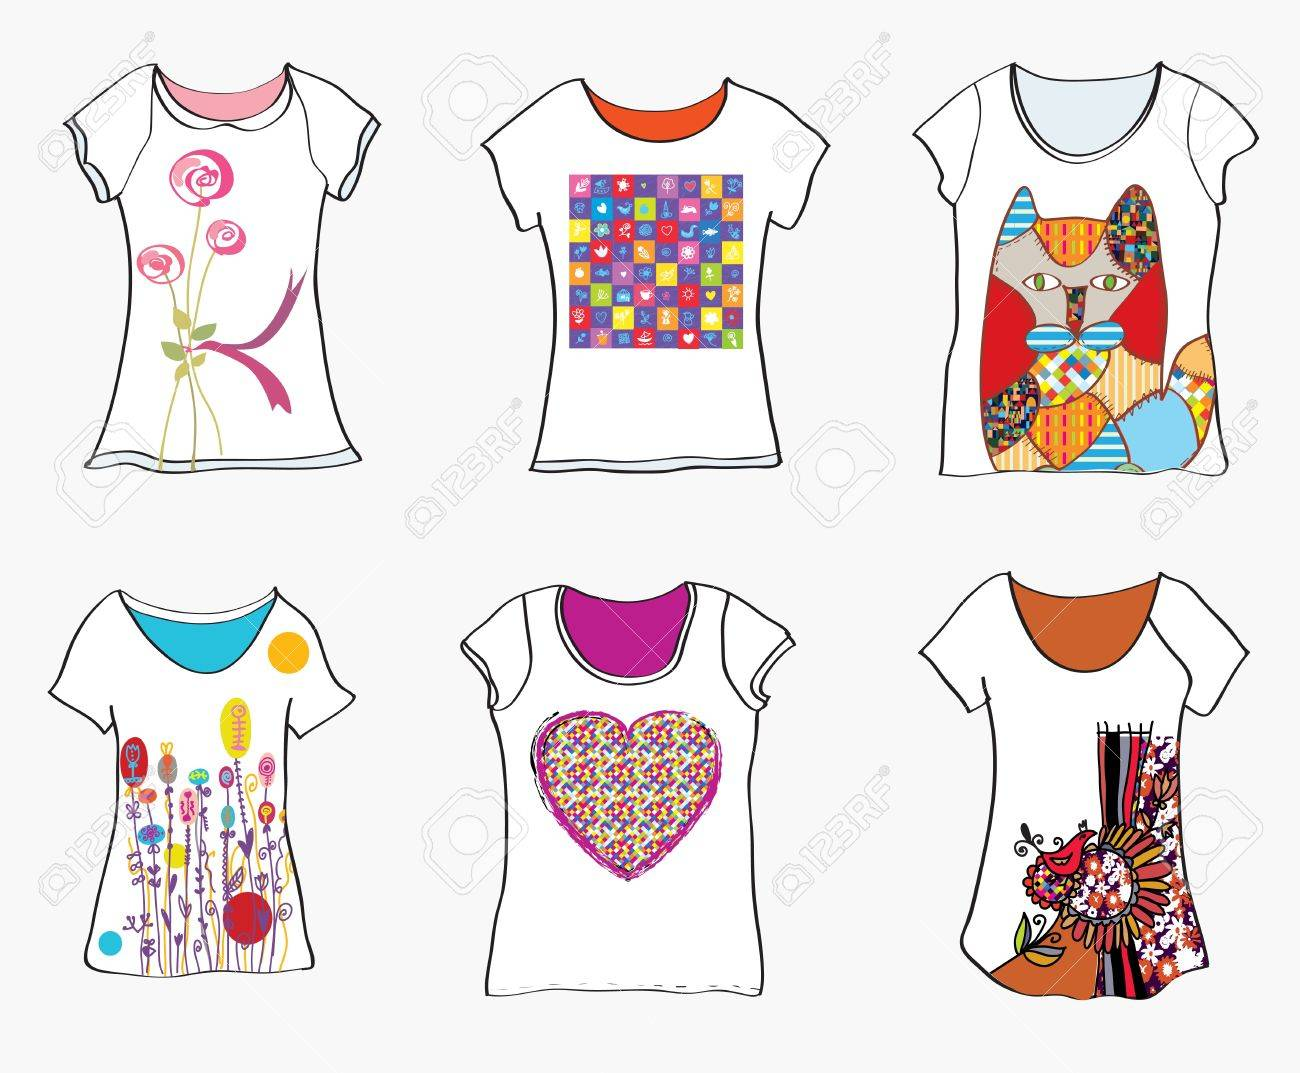 T Shirts Design Templates With Funny Paintings And Patterns Stock Vector